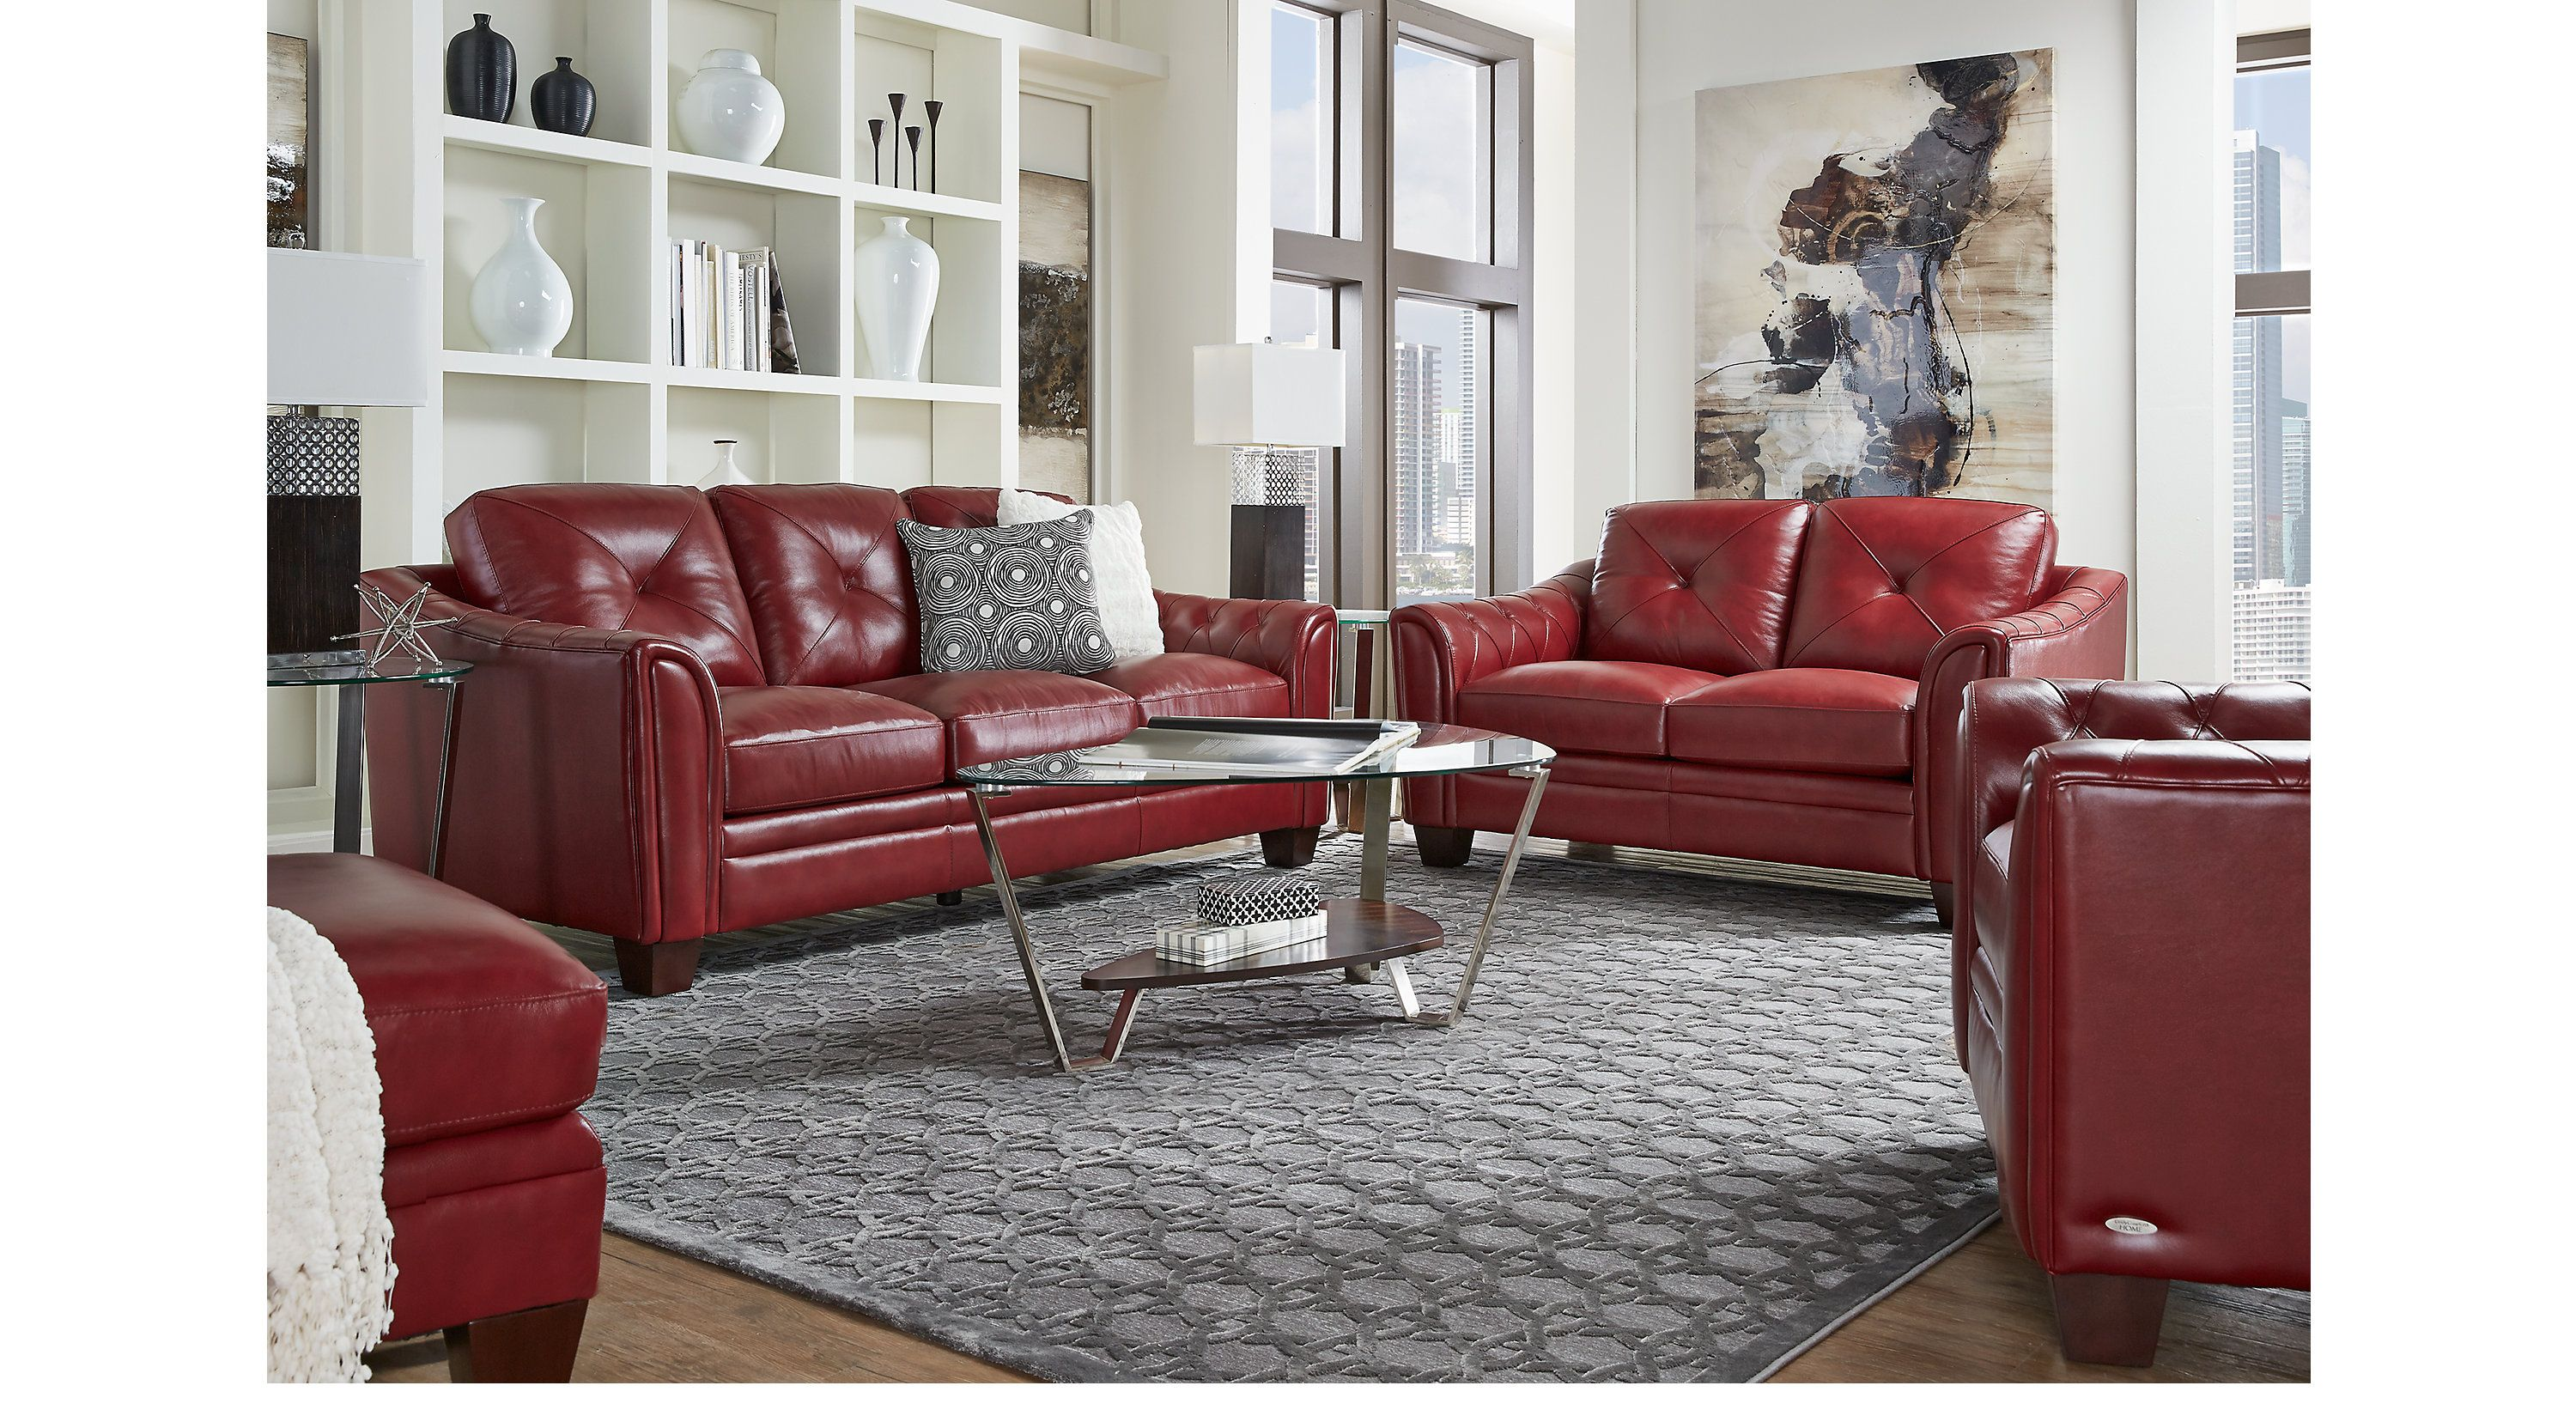 Living Room Sets Cindy Crawford Cindy Crawford Home Marcella Red Leather 3 Pc Living Room 1029262p Leather Couches Living Room Red Couch Living Room Leather Sofa Living Room